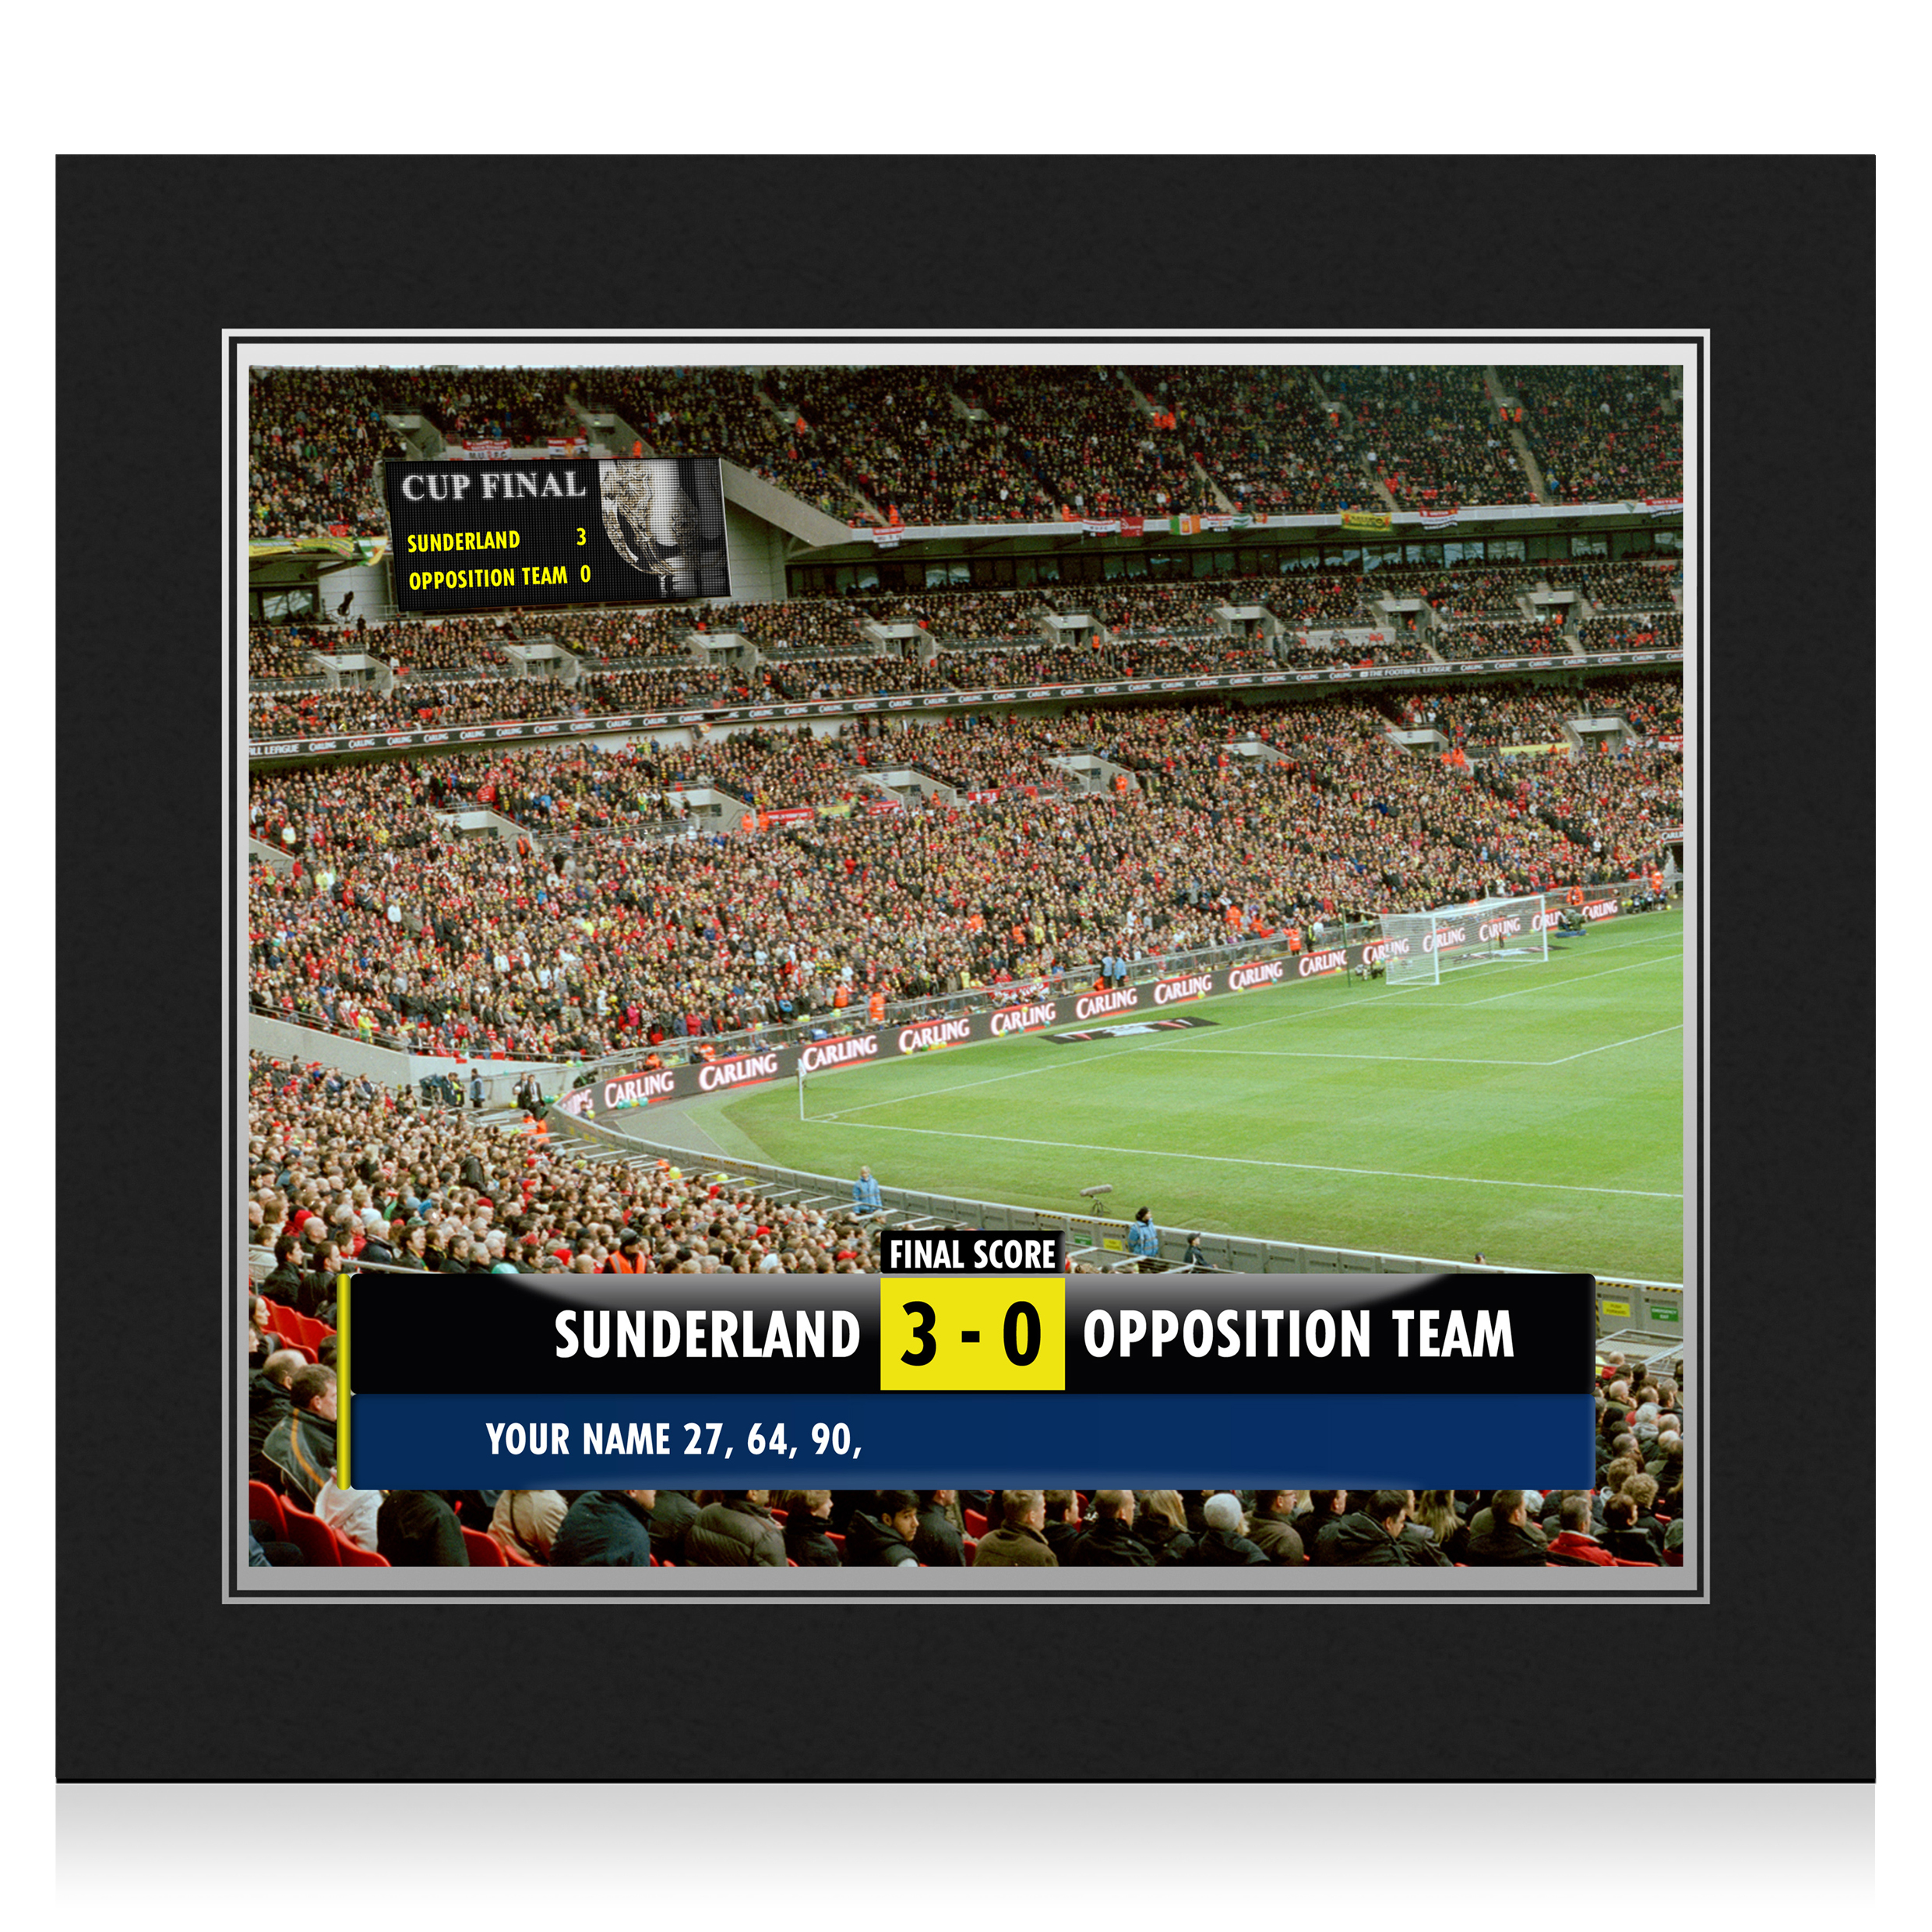 Sunderland Personalised Scoreboard Photo in Presentation Folder